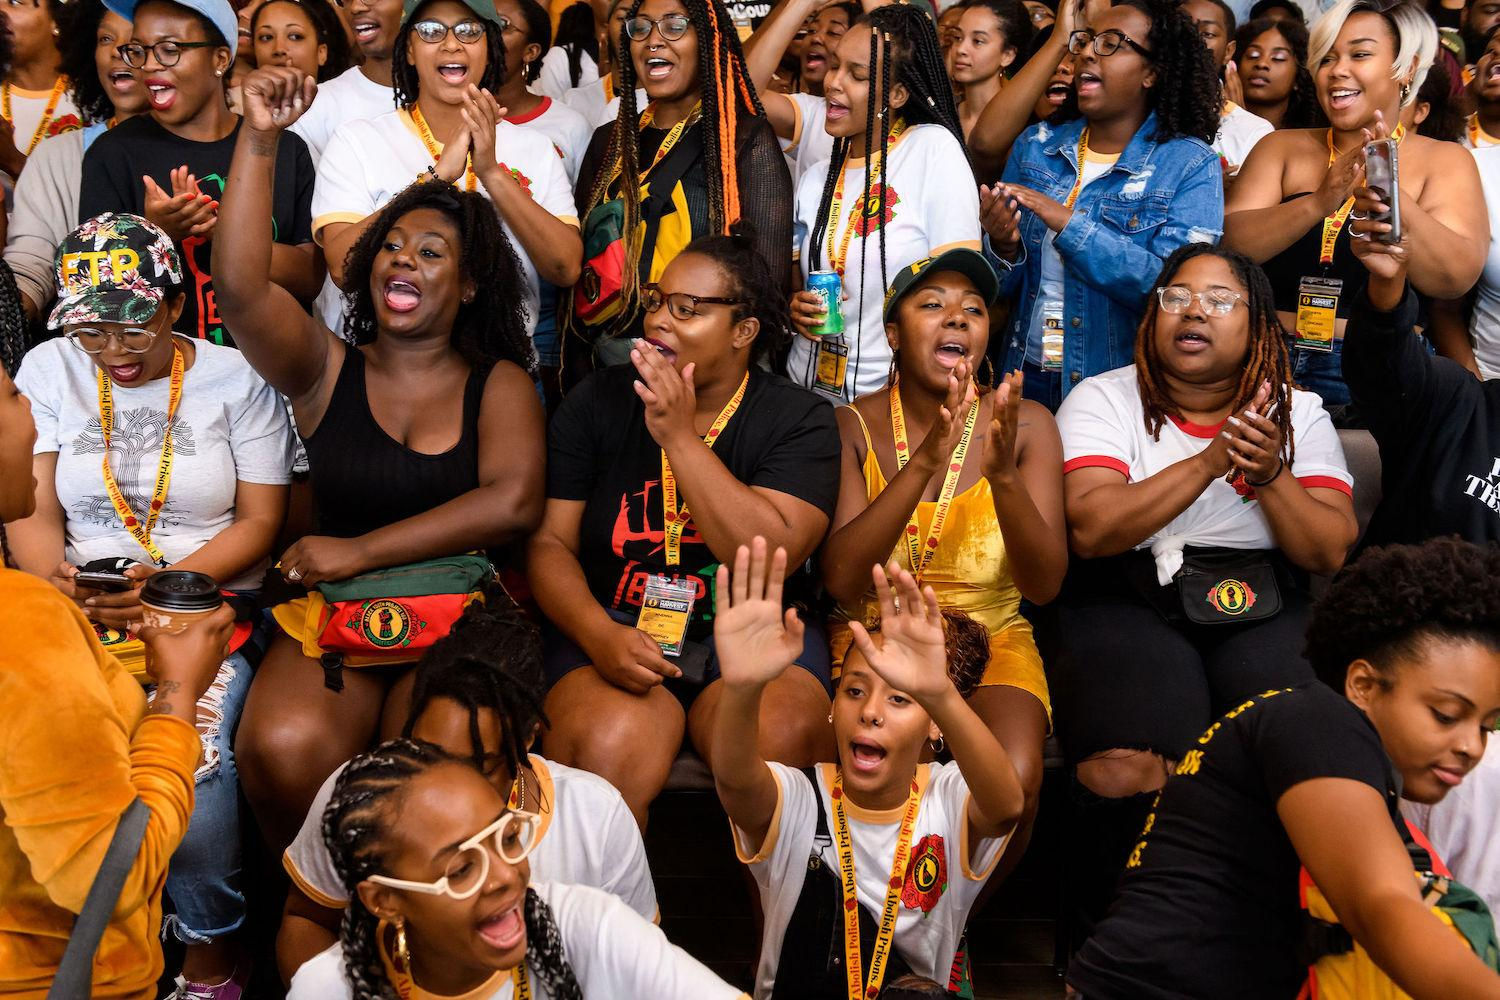 Taken at the Black Youth Project 100 2019 National Convening by Christopher Jason. A group of black womxn clap and cheer.